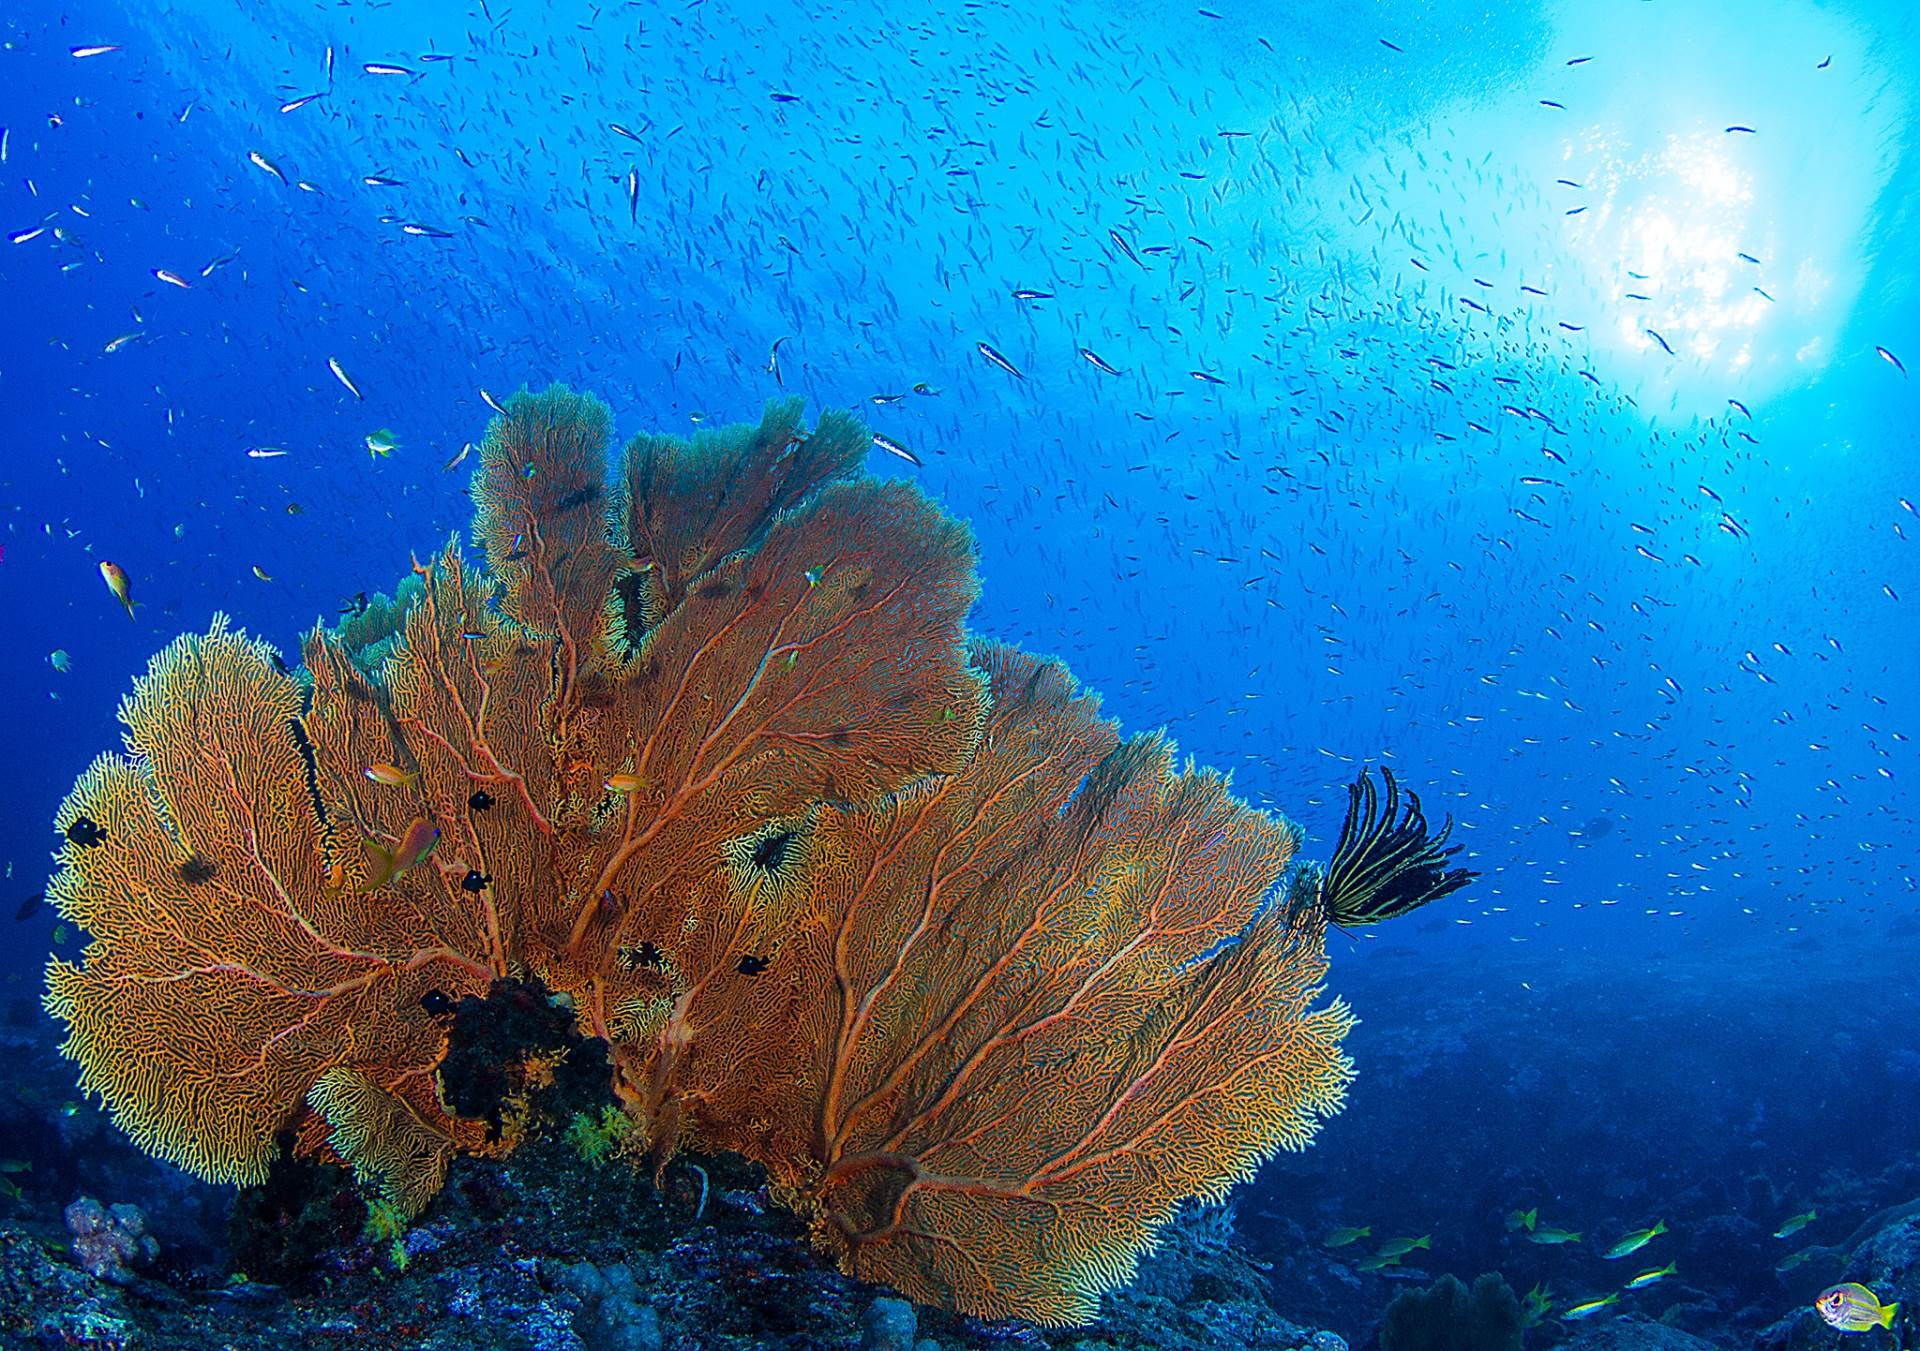 Amazing reefscapes to be had in the Andaman sea, especially at the not so much visited dive sites of Myanmar!